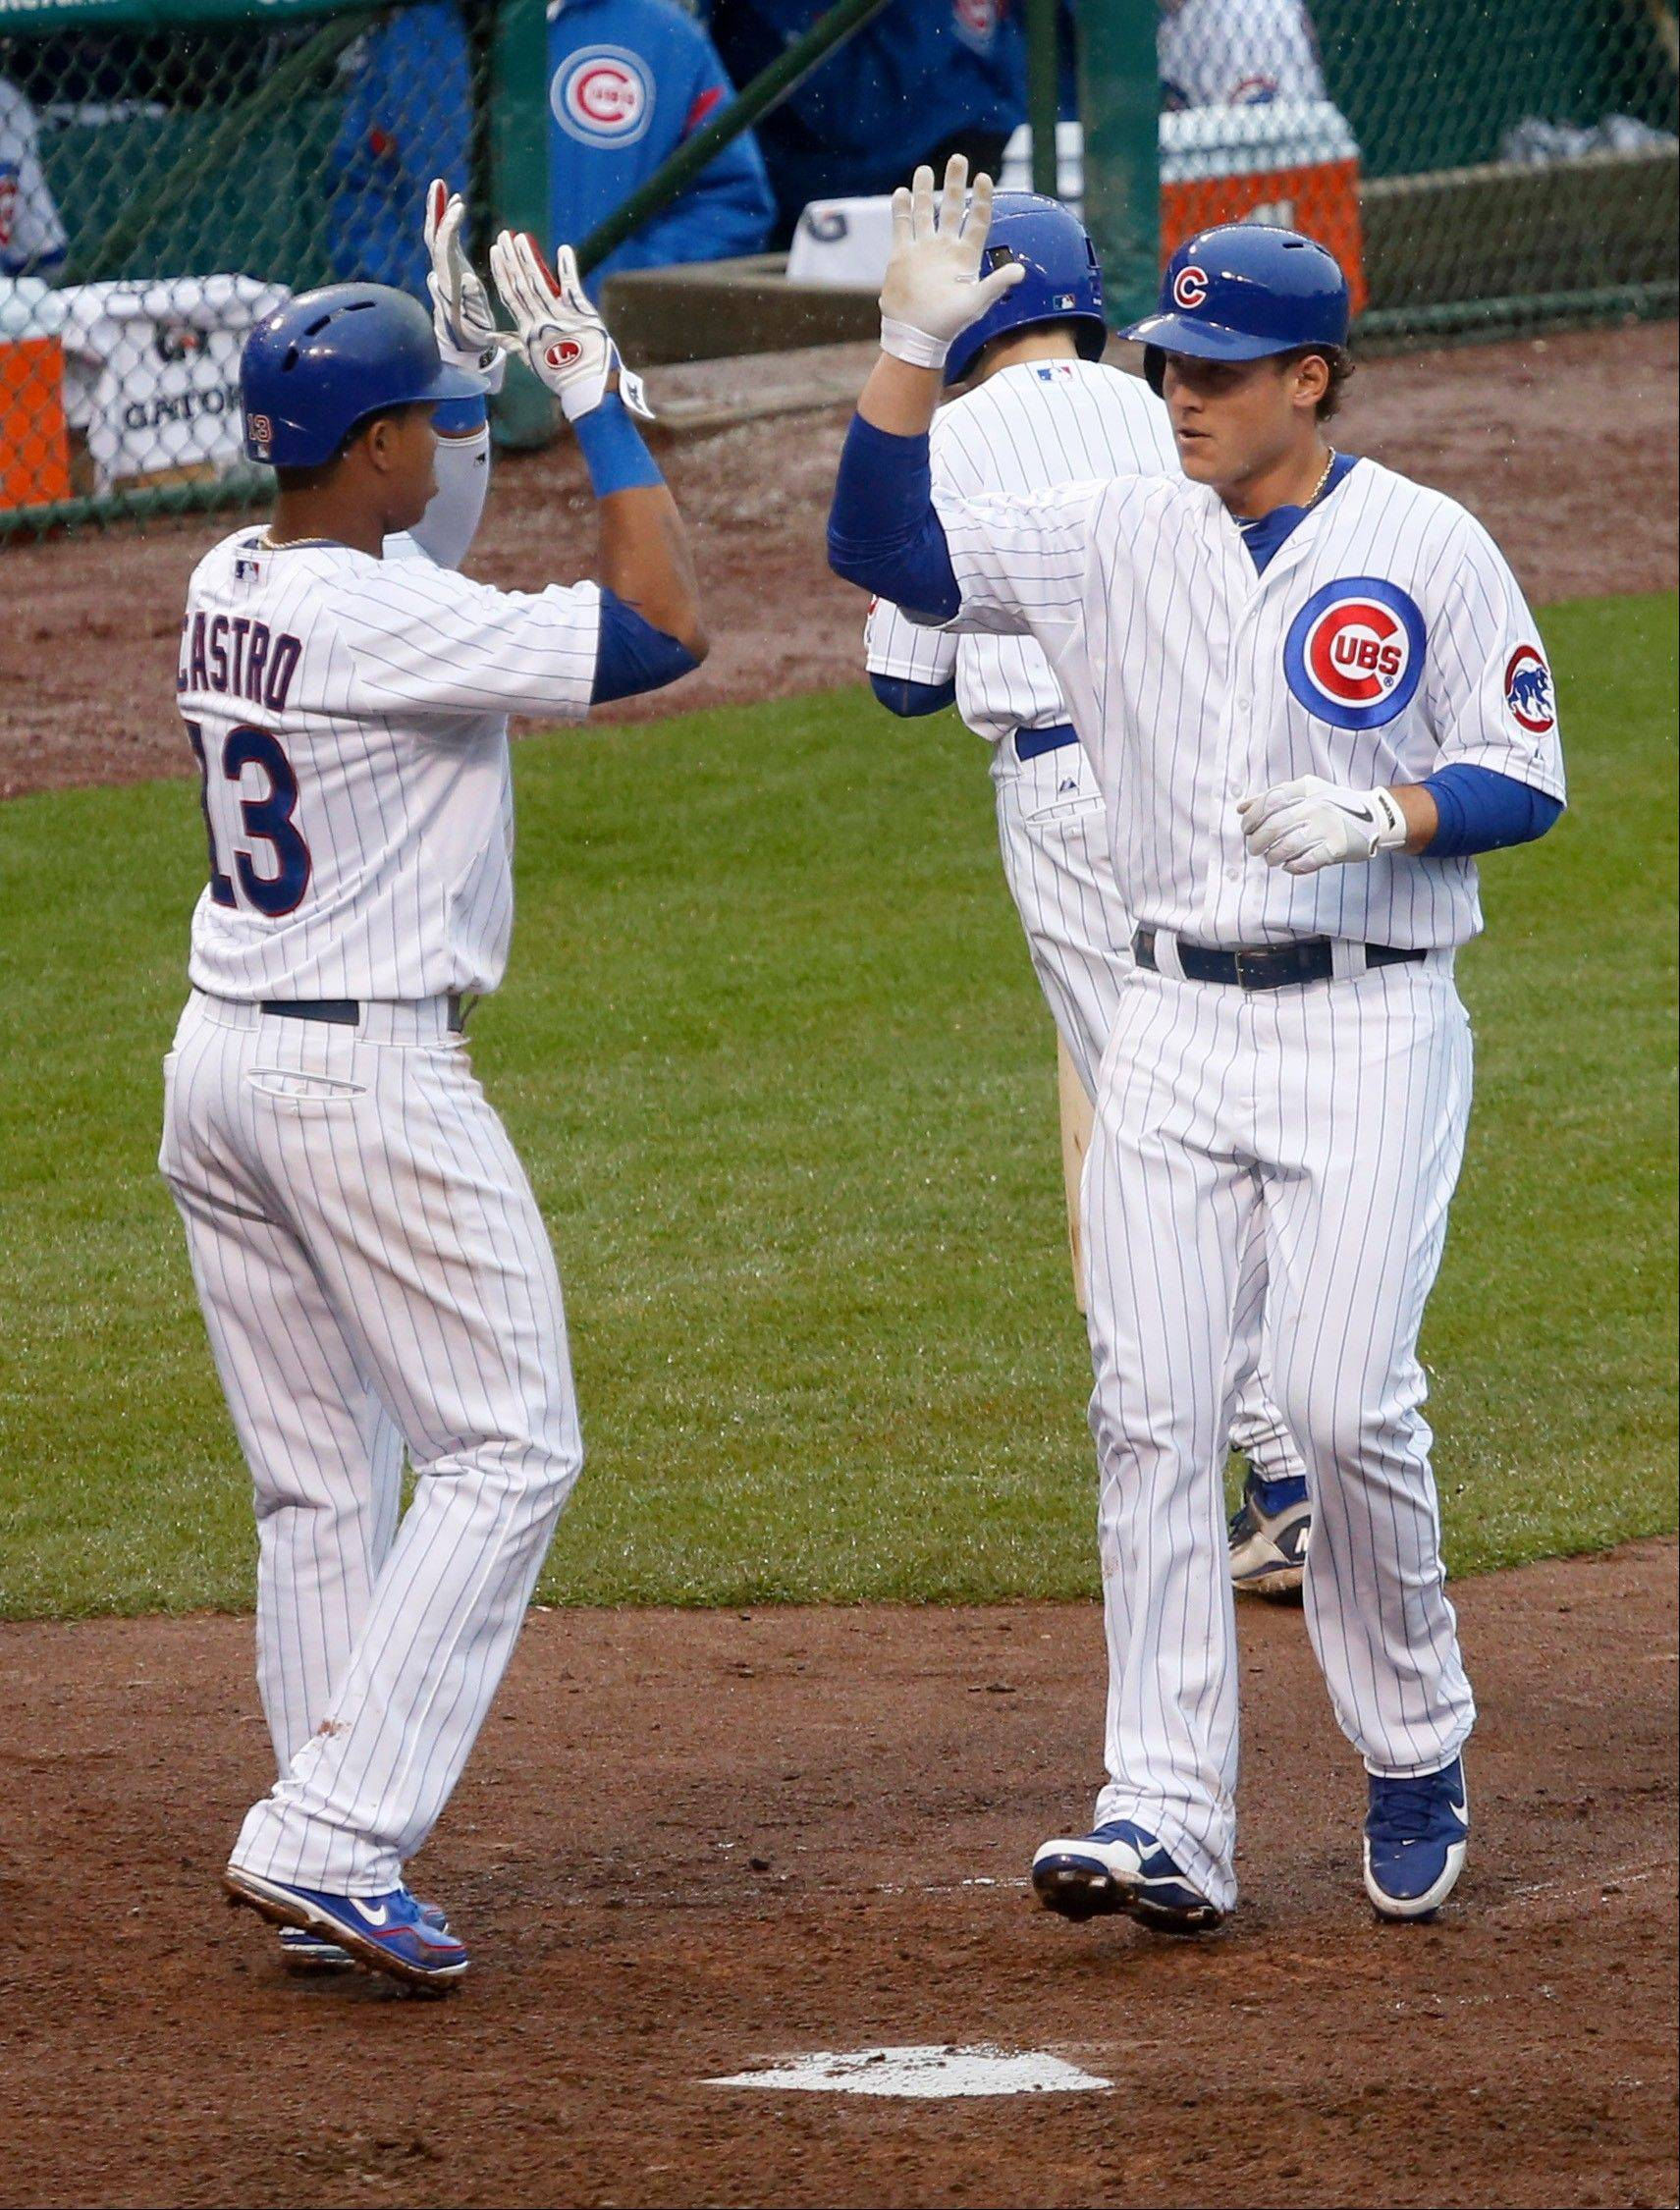 Chicago Cubs' Anthony Rizzo, right is greeted at home by Starlin Castro after the pair scored on Rizzo's home run off Texas Rangers starting pitcher Alexi Ogando during the third inning of a baseball game, Thursday, April 18 2013, in Chicago. (AP Photo/Charlie Arbogast)